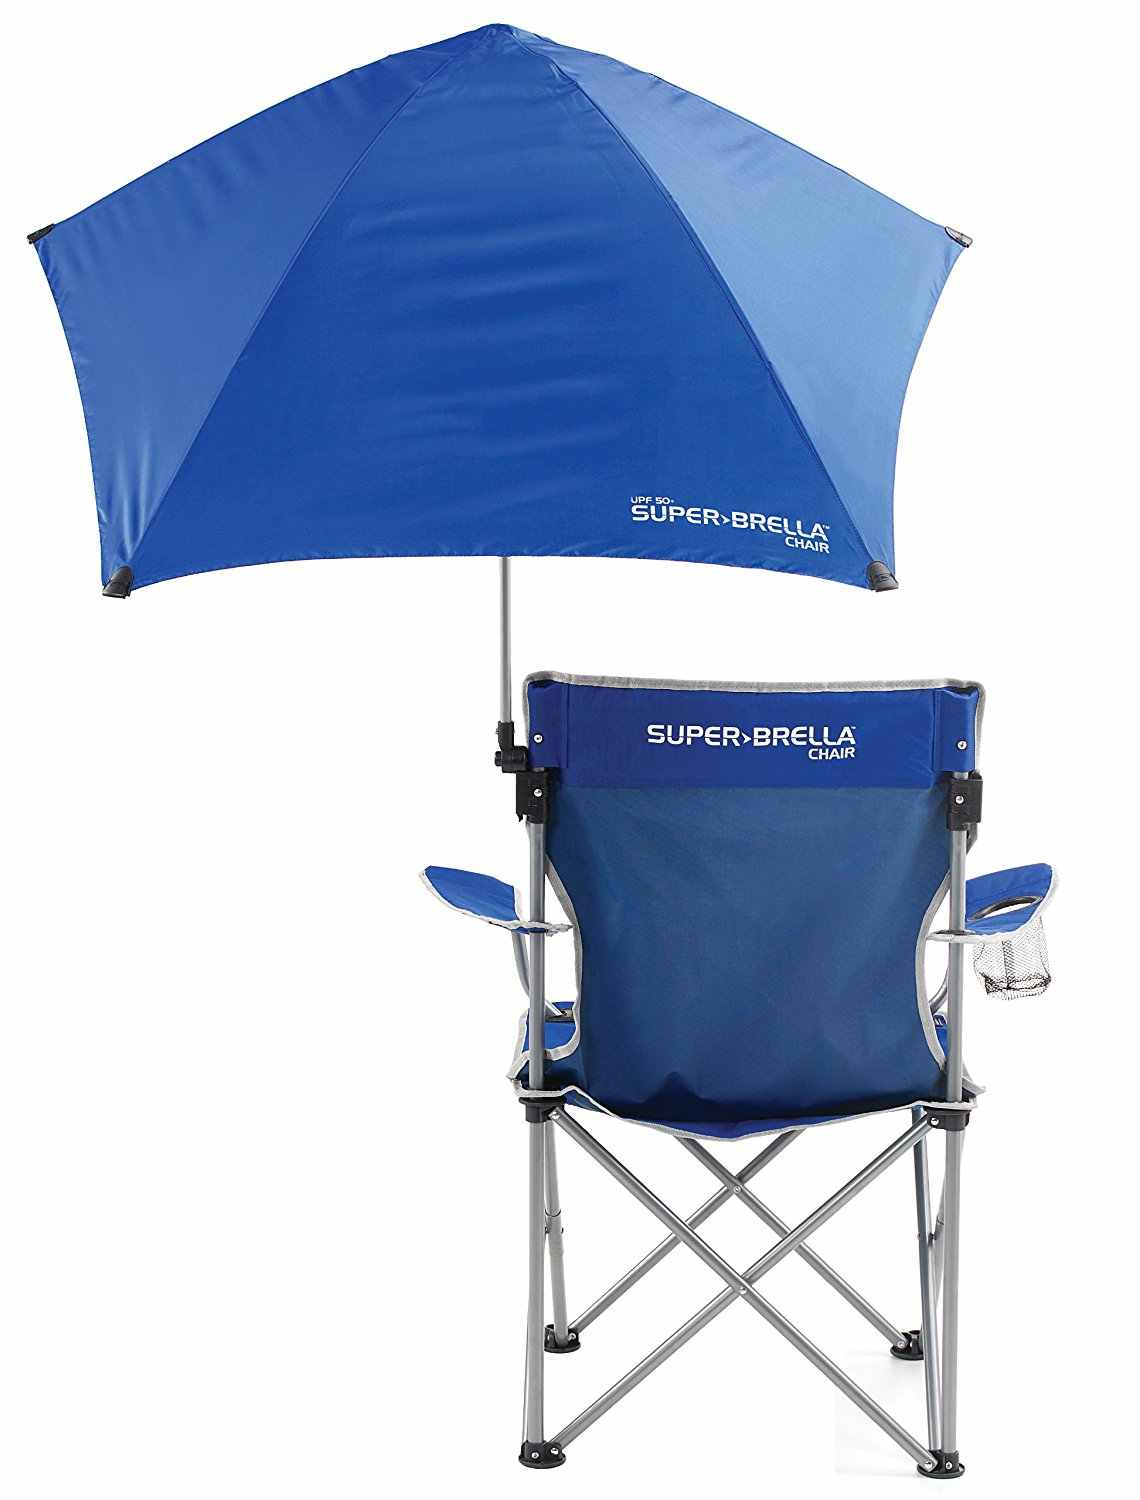 Enjoyable Outdoor Quik Shade Adjustable Canopy Folding Camp Chair Portable Fishing Camping Reclining Lounging Chair Heavy Duty 100Kg Spiritservingveterans Wood Chair Design Ideas Spiritservingveteransorg